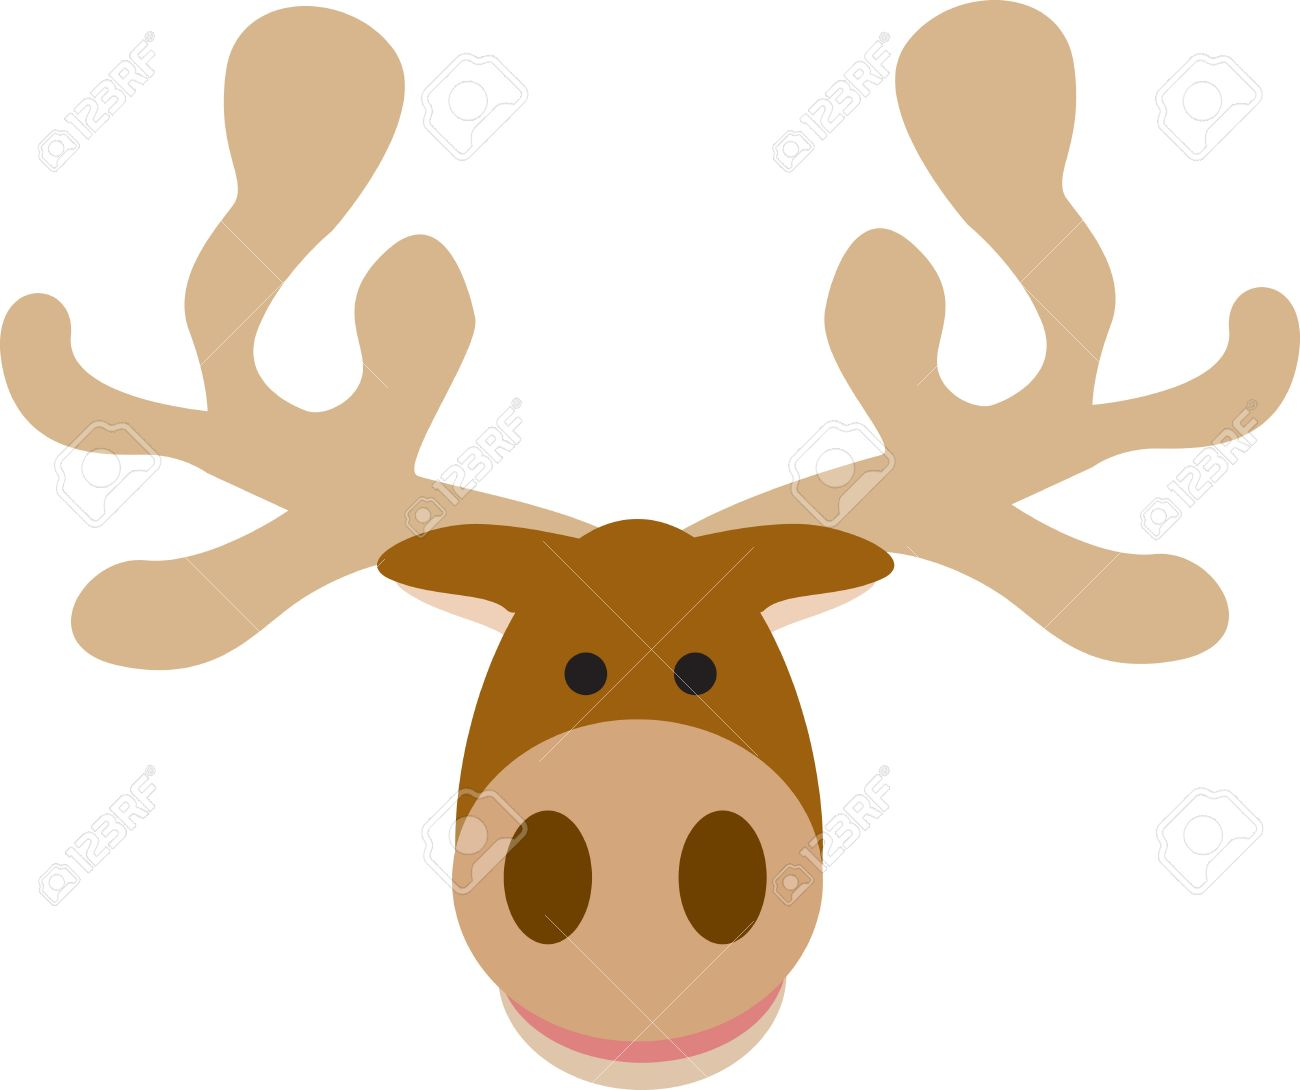 moose cartoon images u0026 stock pictures royalty free moose cartoon